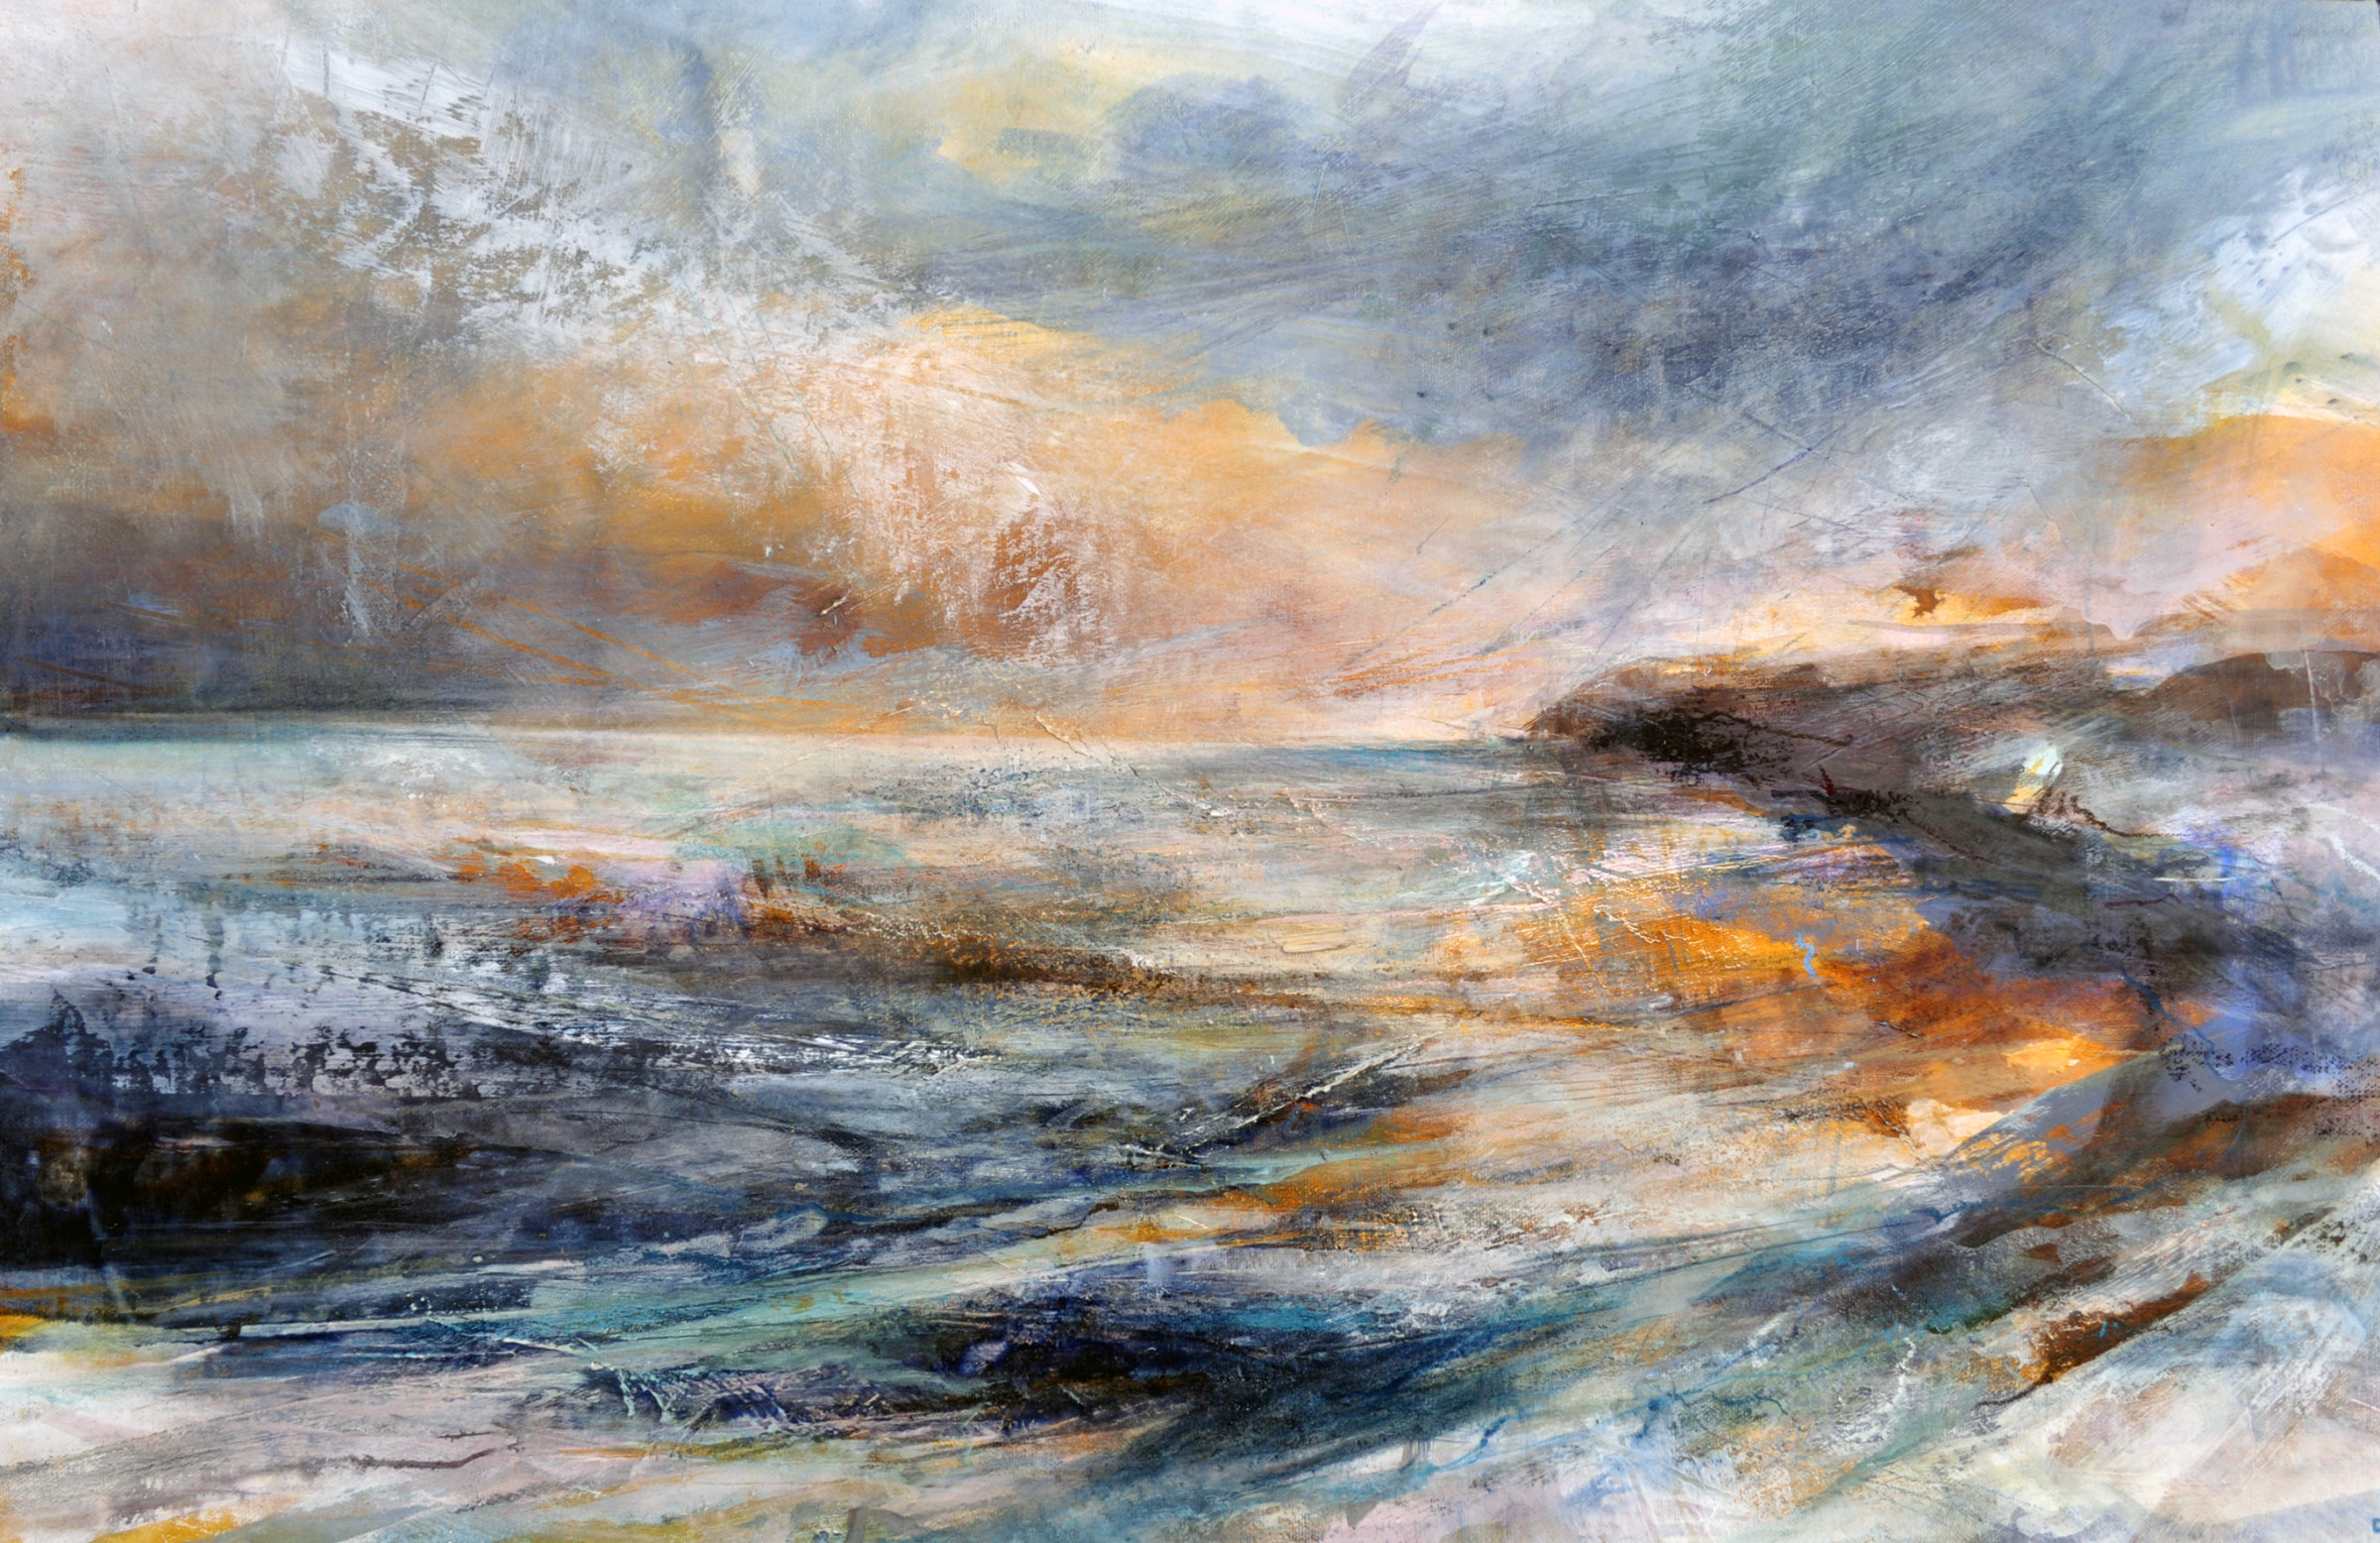 <span class=&#34;link fancybox-details-link&#34;><a href=&#34;/artists/90-freya-horsley/works/4168-freya-horsley-rest-2017/&#34;>View Detail Page</a></span><div class=&#34;artist&#34;><strong>Freya Horsley</strong></div> <div class=&#34;title&#34;><em>Rest</em>, 2017</div> <div class=&#34;signed_and_dated&#34;>signed on reverse</div> <div class=&#34;medium&#34;>mixed media on canvas, framed and glazed</div> <div class=&#34;dimensions&#34;>59 x 82 cm<br /> 23 1/4 x 32 1/4 inches</div><div class=&#34;copyright_line&#34;>OwnArt: £ 78 x 10 Months, 0% APR</div>